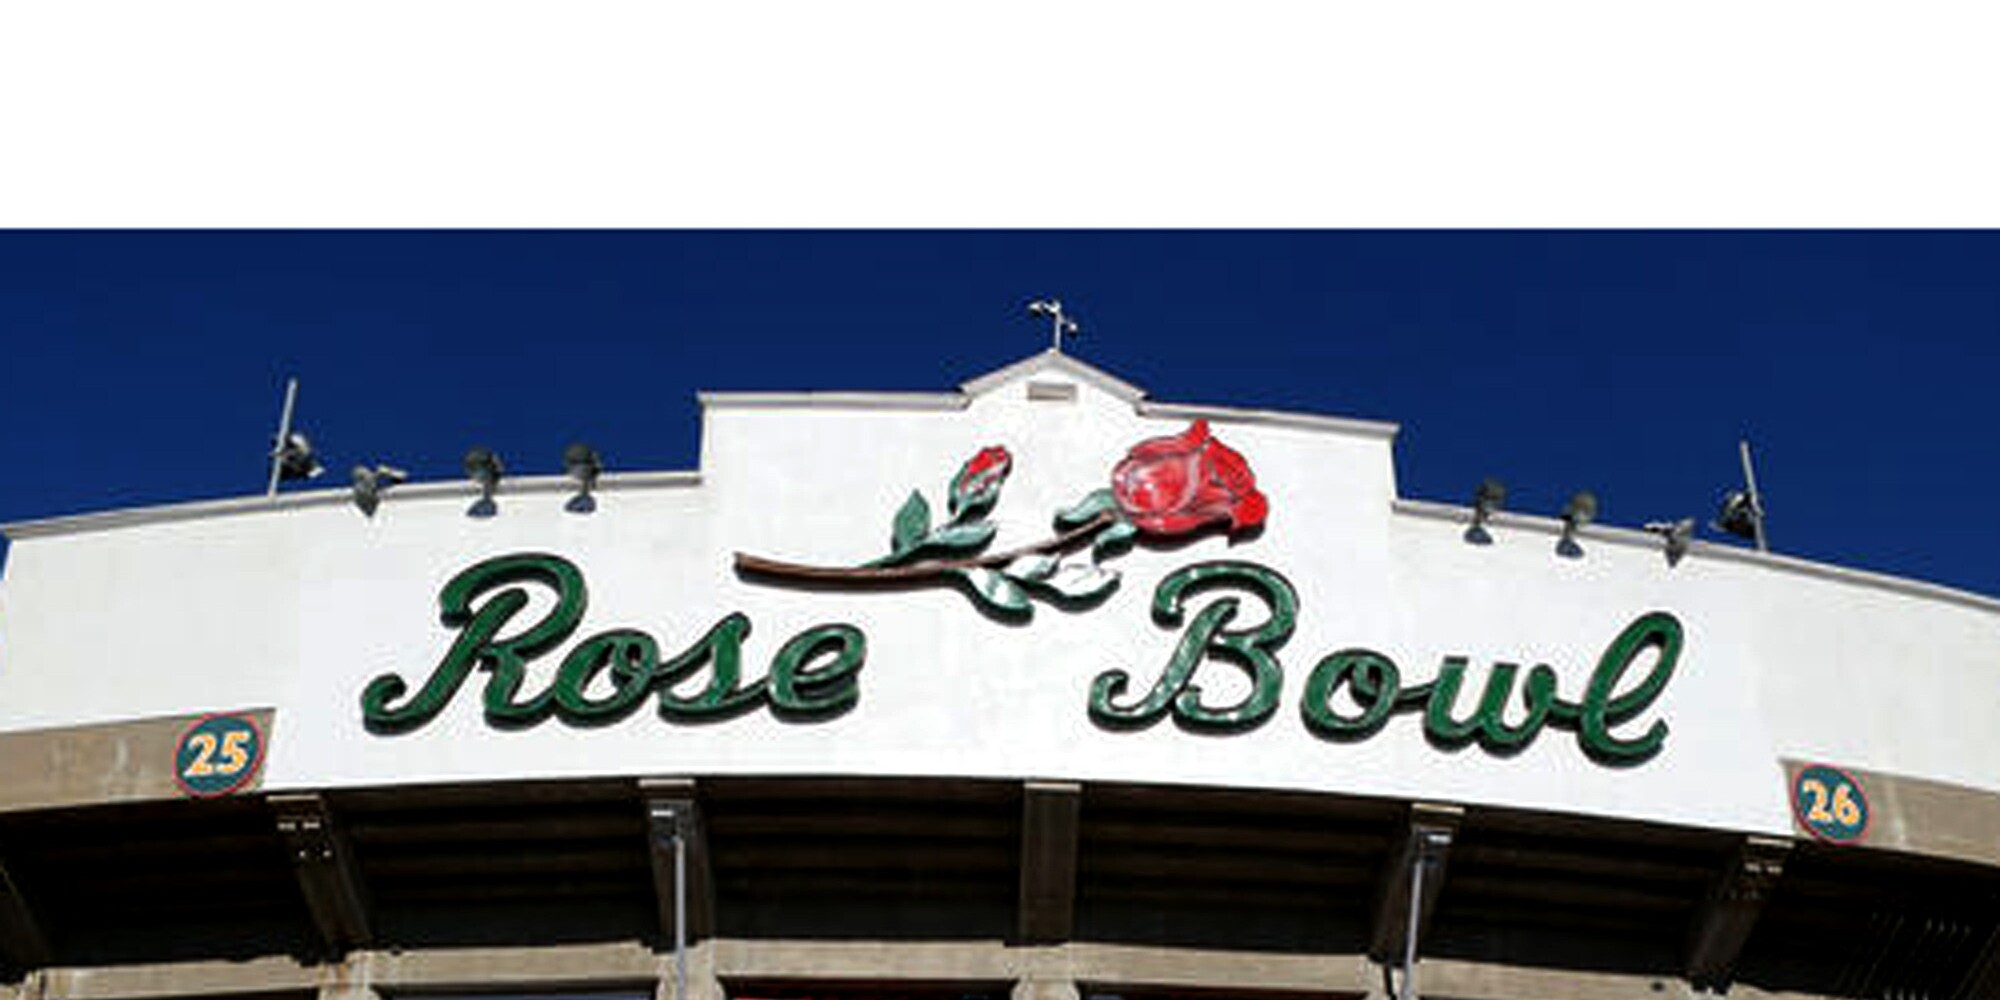 Rose Bowl live updates: Ohio State defeats Washington, 28-23